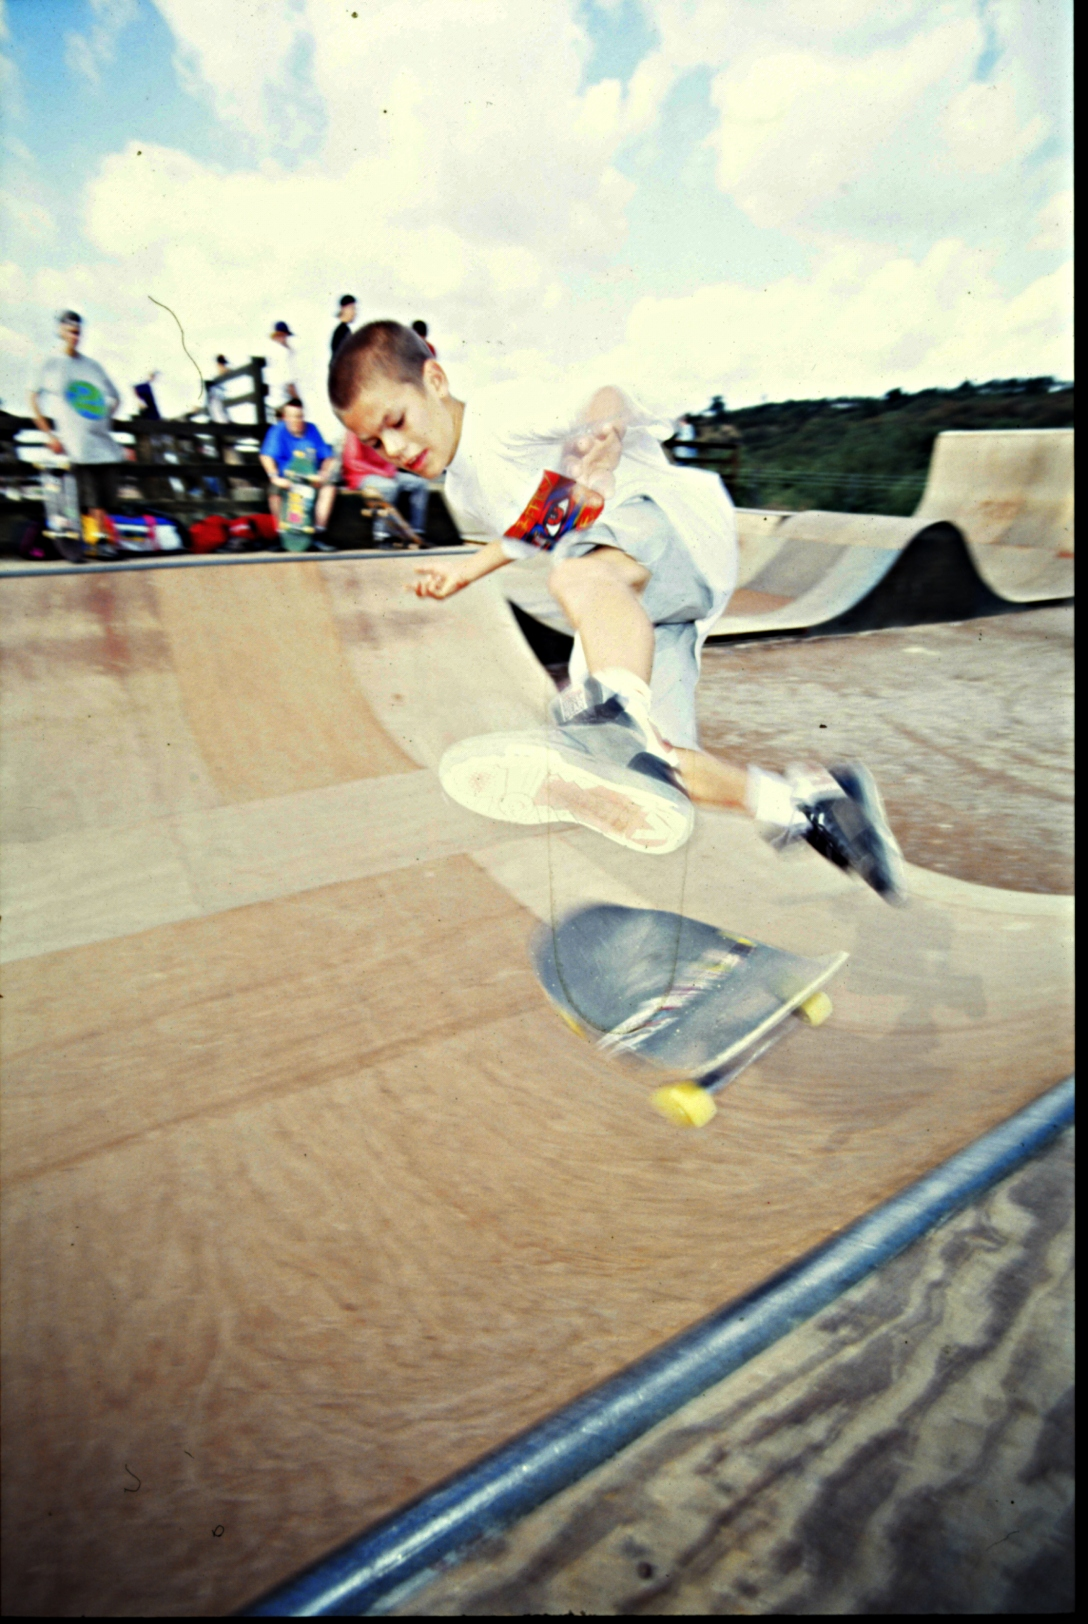 geoff-rowley-360-flip-lea-on-sea-photo-kevin-banks-speedway-skateboarding-magazine